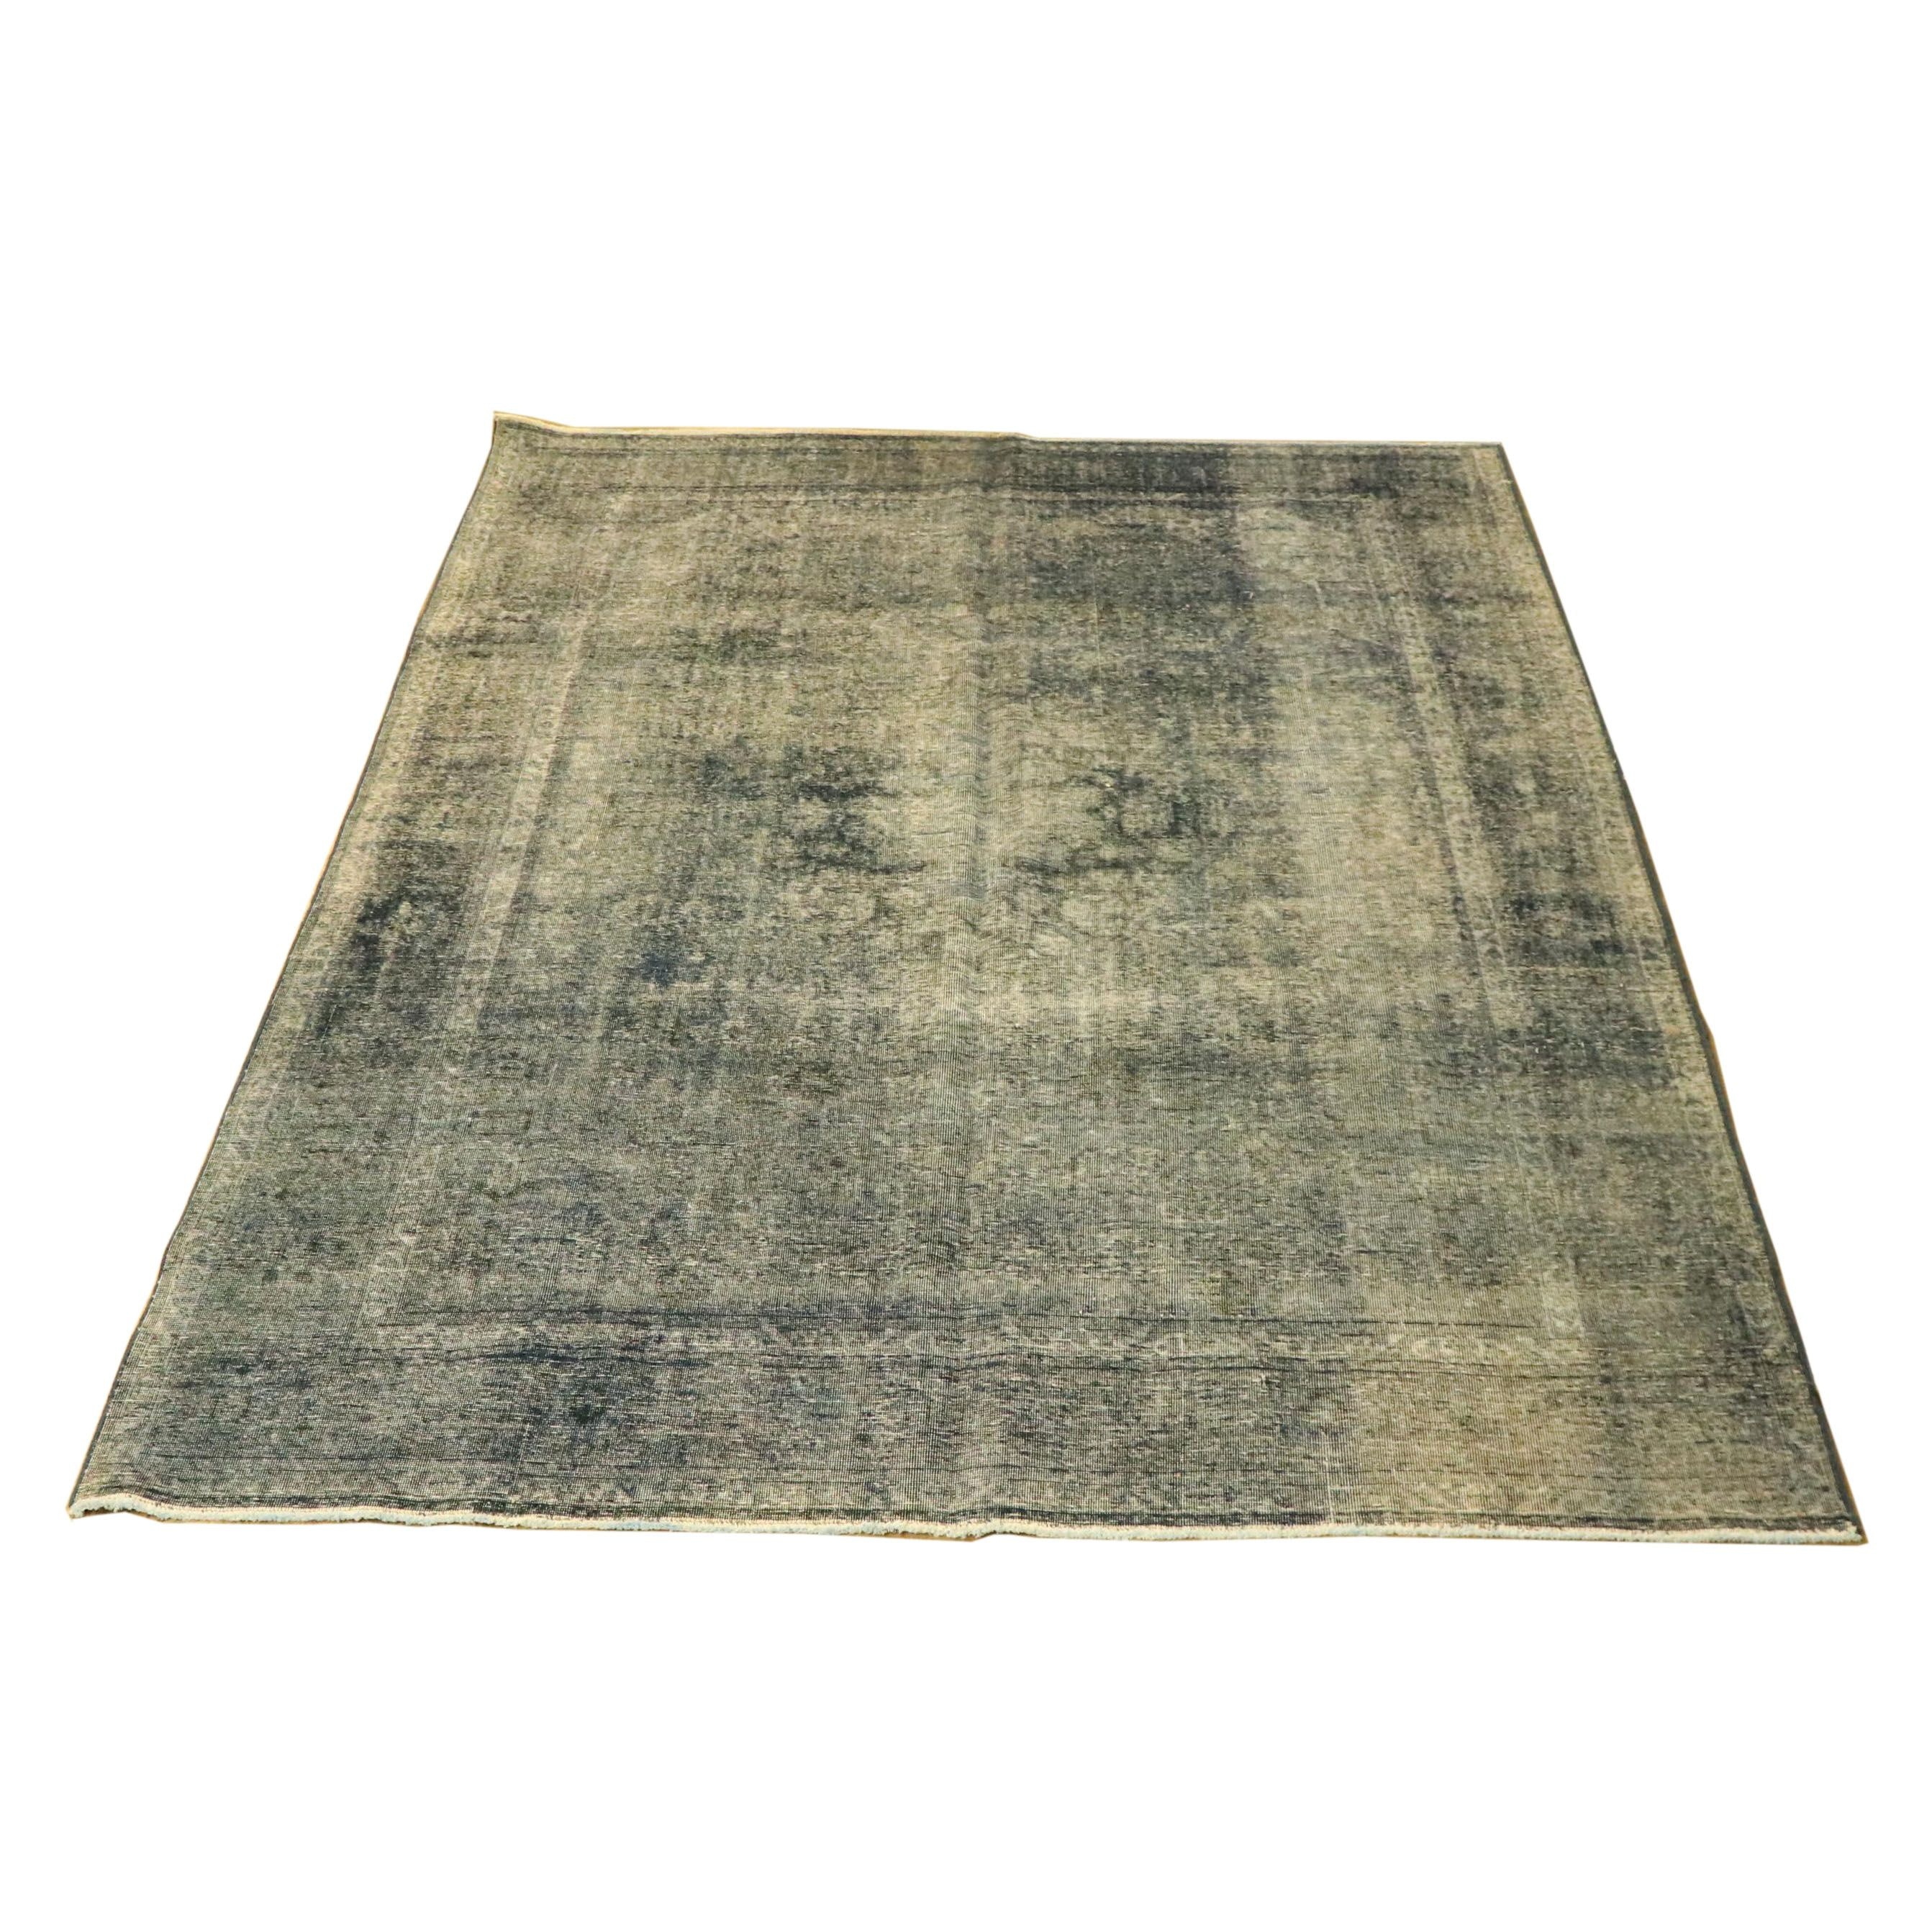 Power-Loomed Overdyed Persian-Style Wool Rug